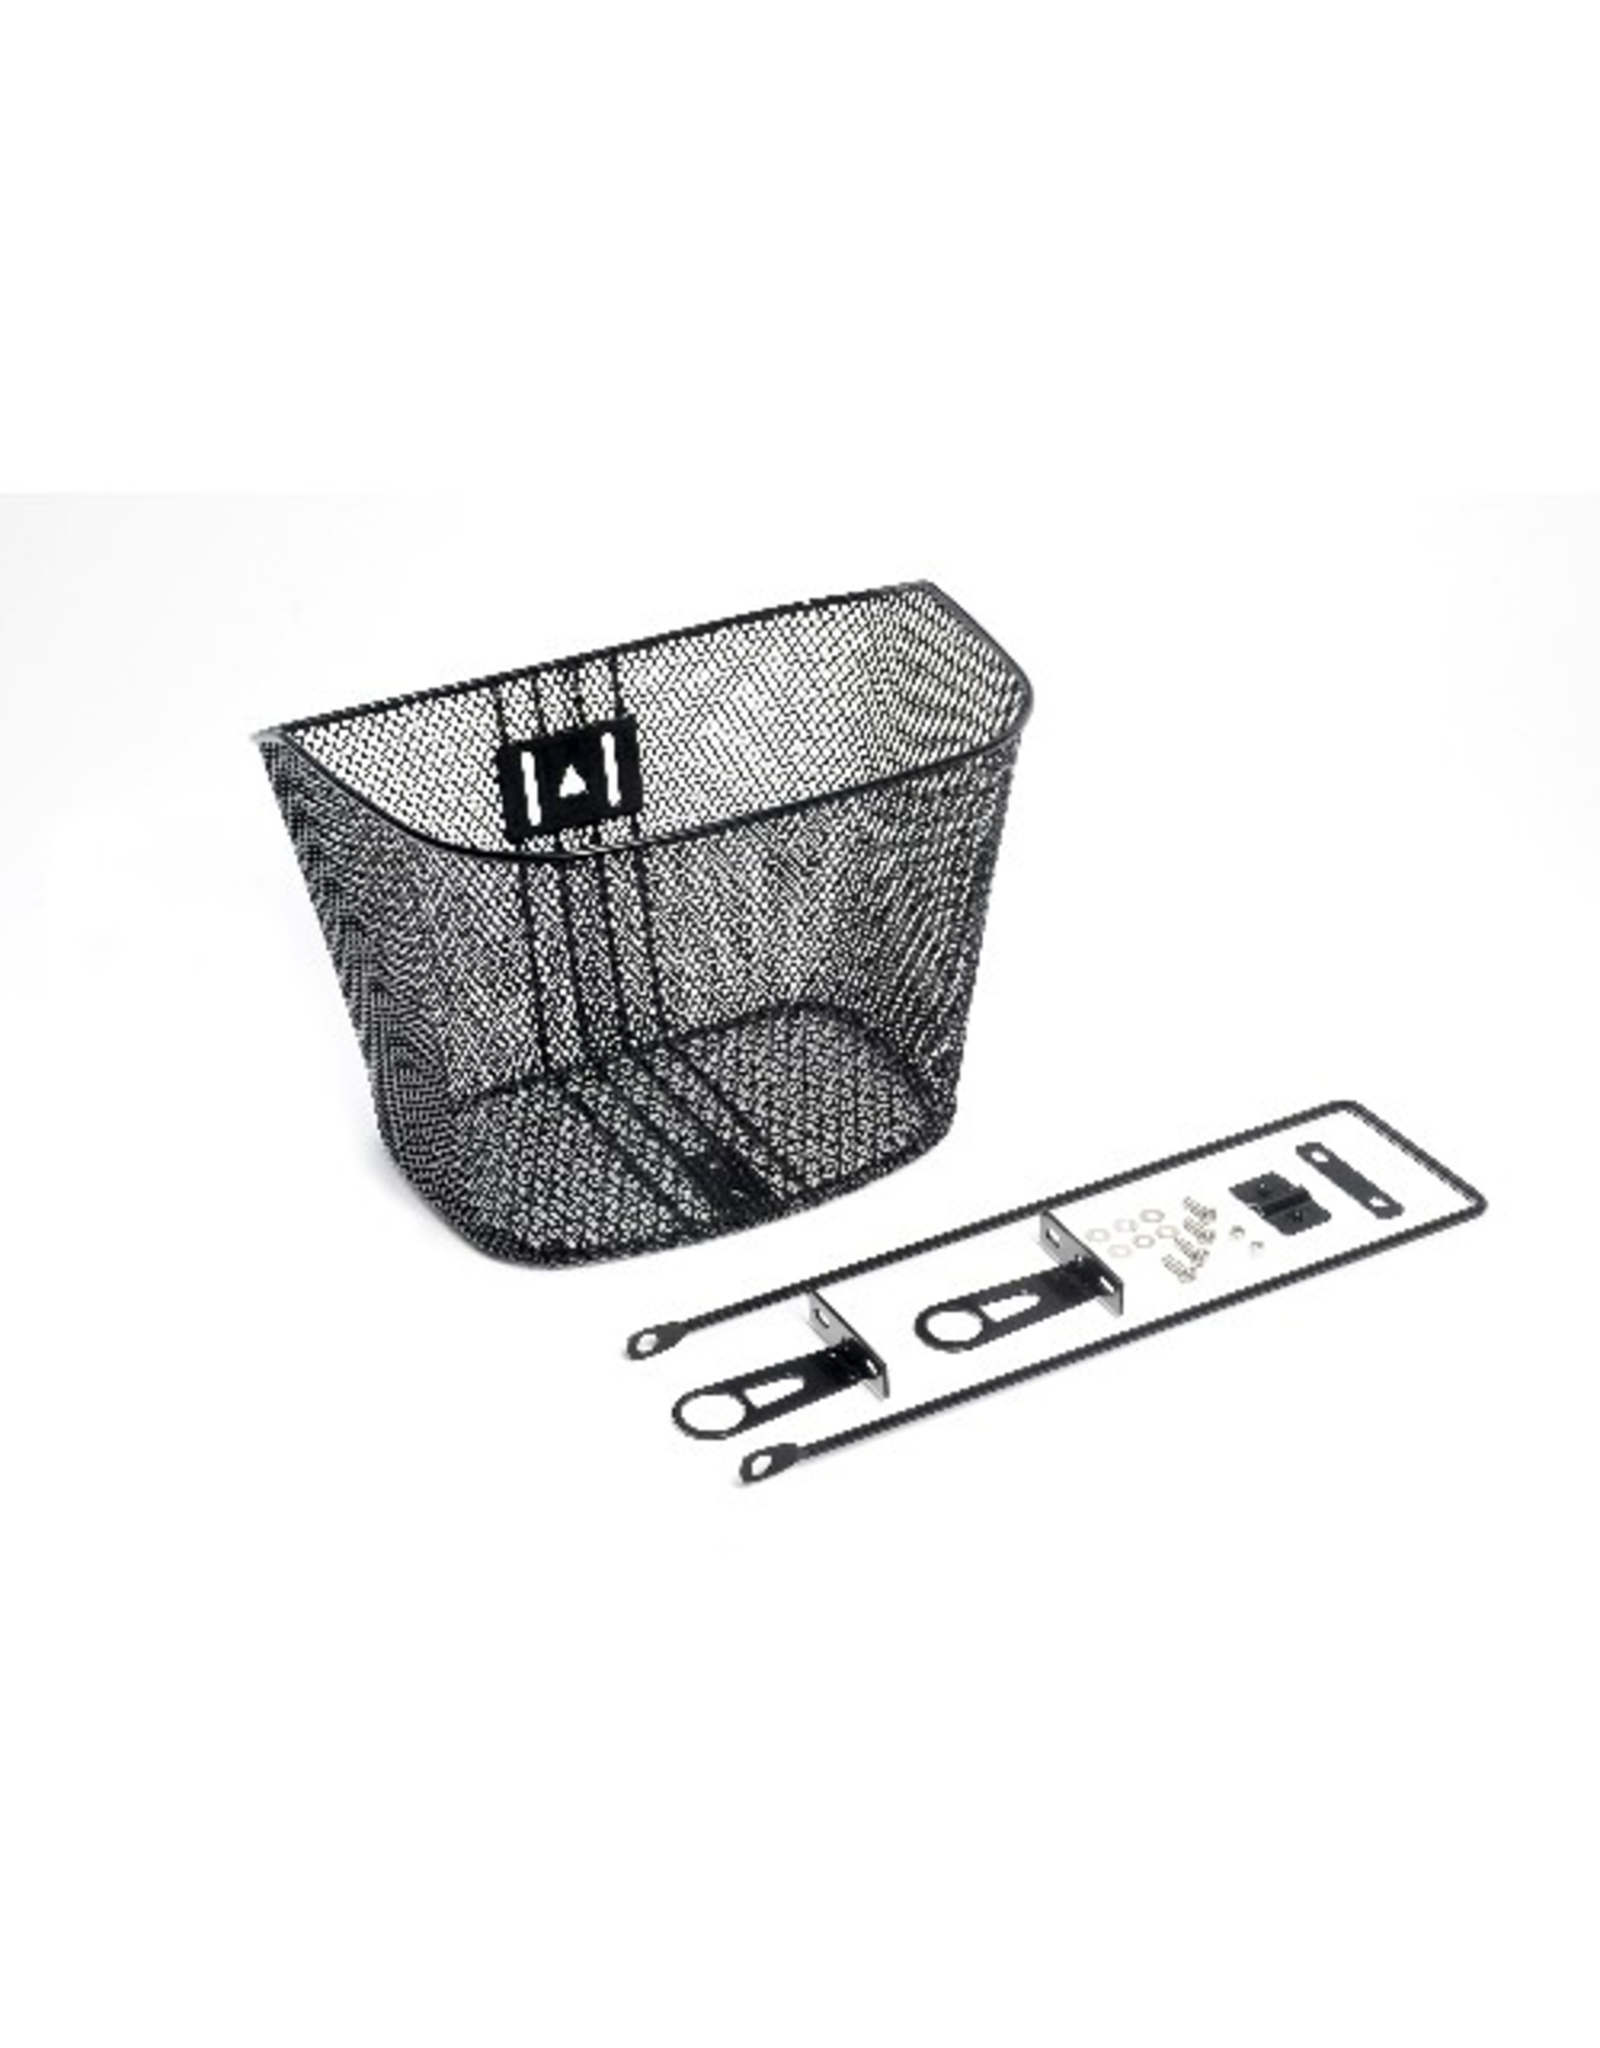 BIKECORP BASKET WIRE MESH FRONT WITH FORK STAY BLACK